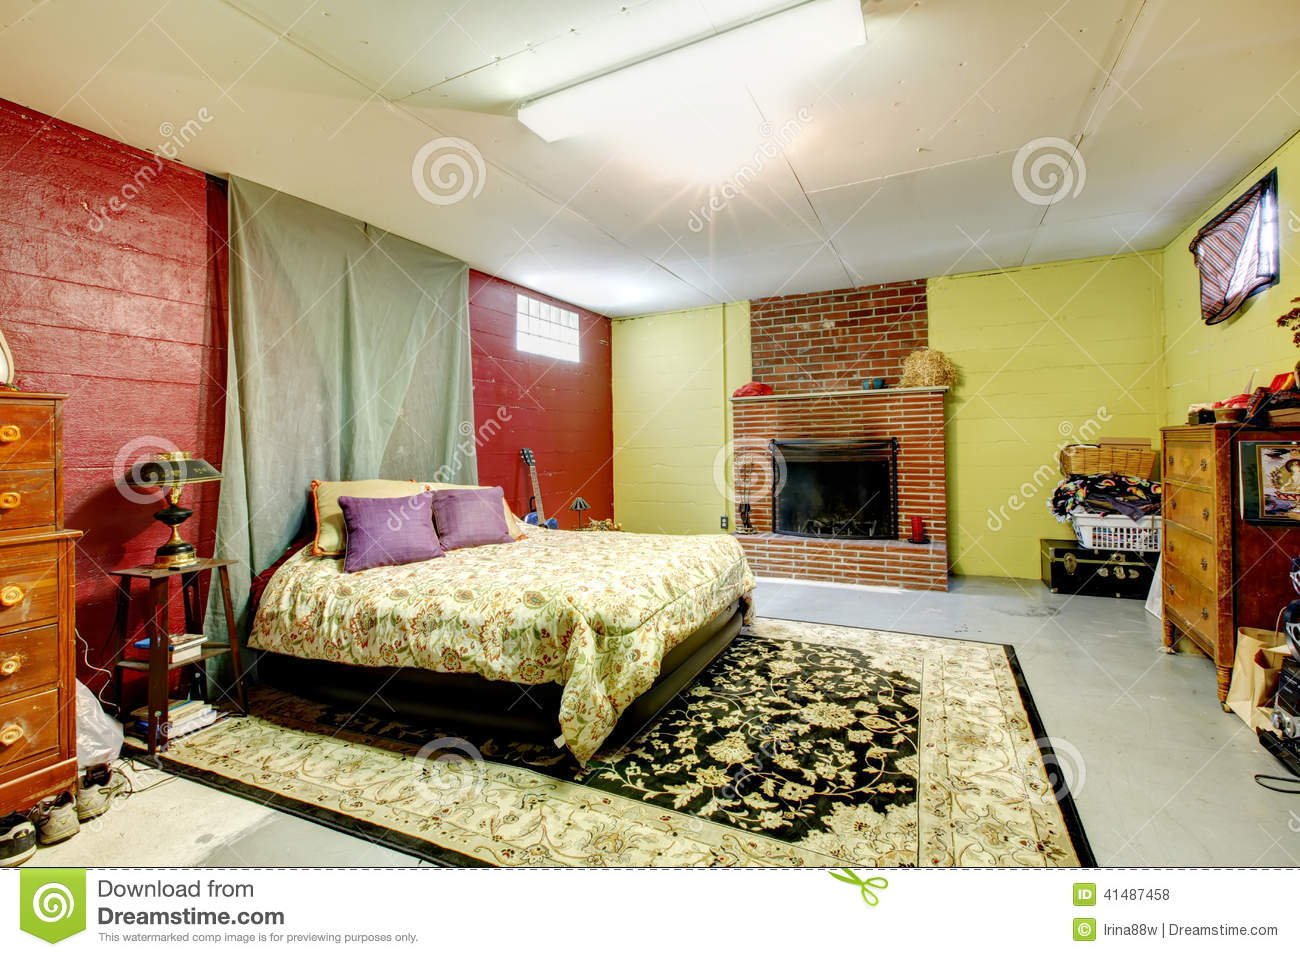 Bedroom With Fireplace In Old House Stock Photo Image 41487458